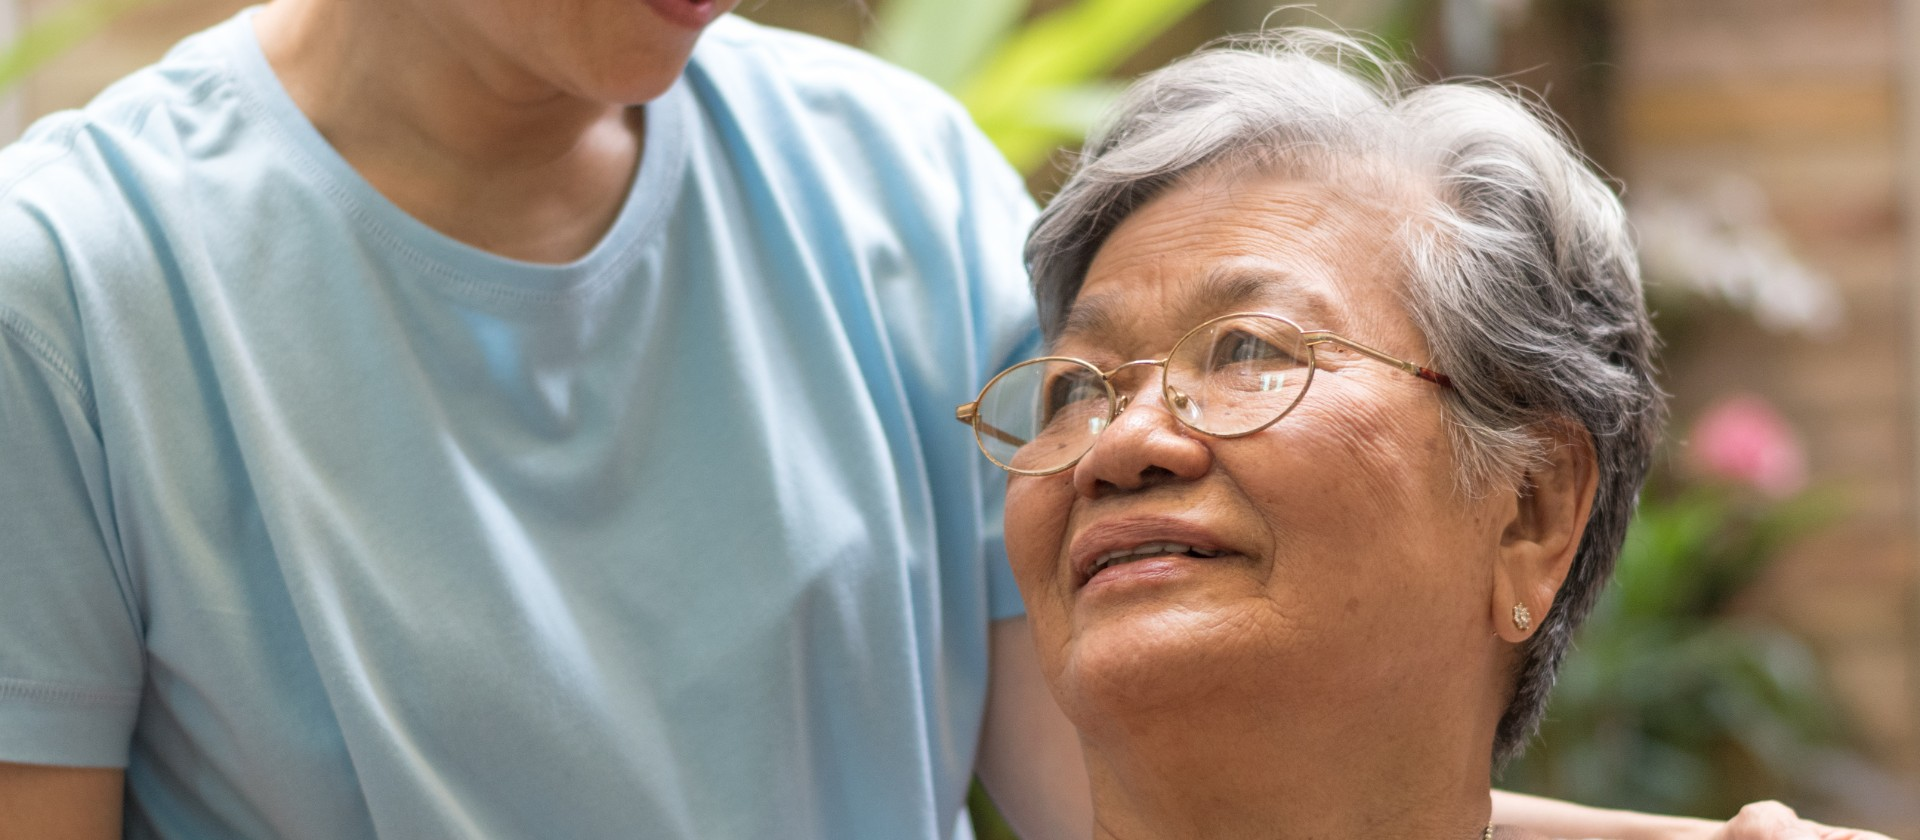 Elderly woman patient with home care nurse Gracia Hospice